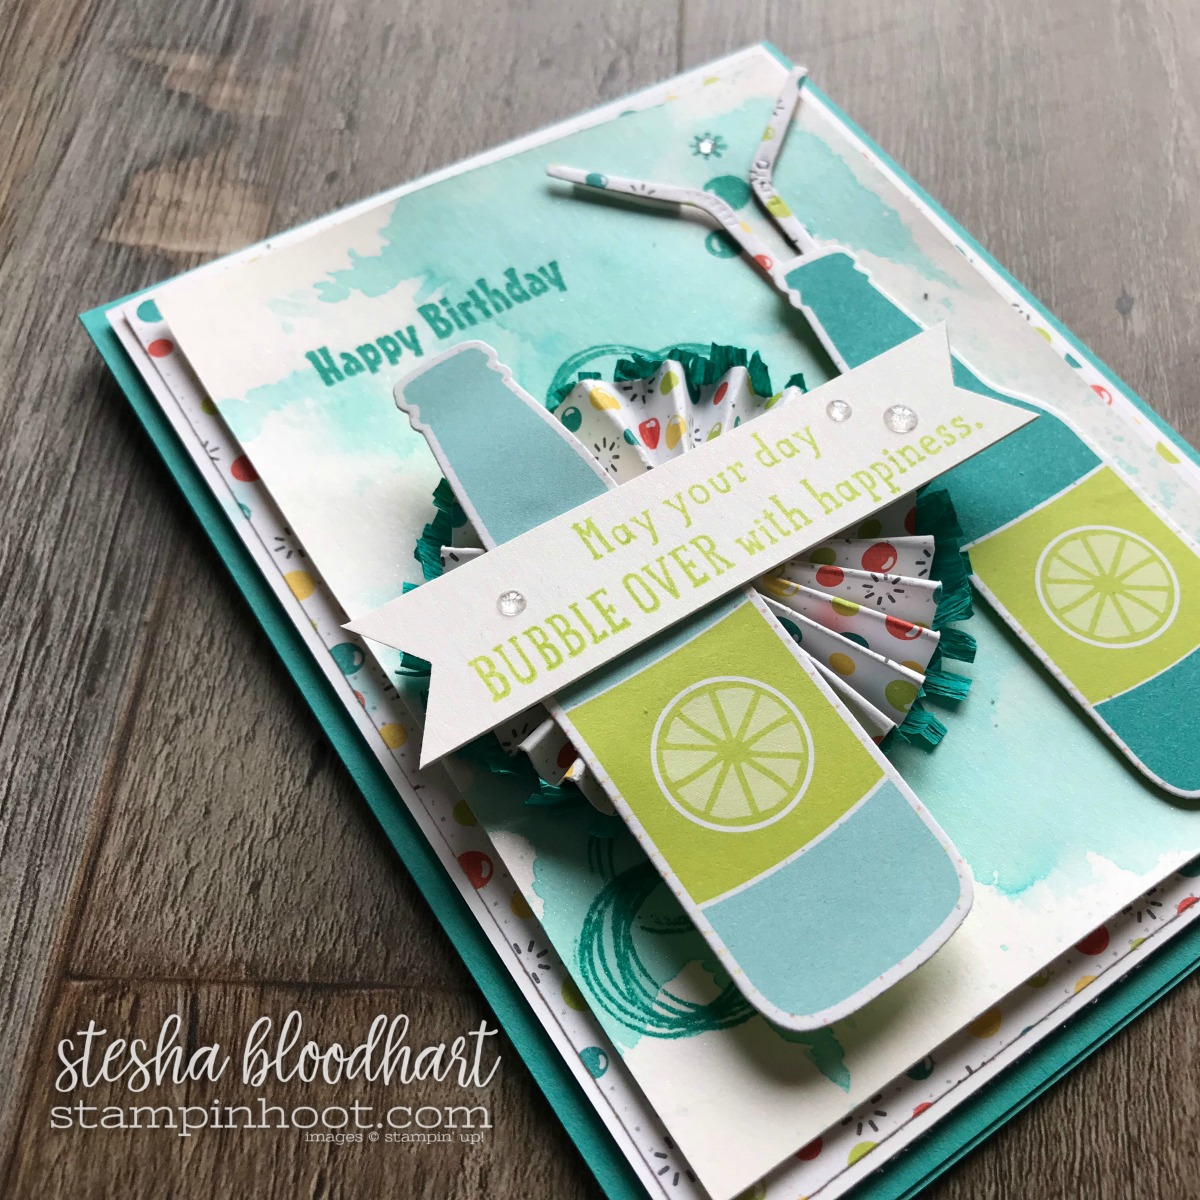 Bubble Over Bundle by Stampin' Up! 2018 Occasions Catalog, Bubbles & Fizz DSP by Stampin' Up! 2018 Sale-a-Bration Catalog Card Created by Stesha Bloodhart, Stampin' Hoot! For the December Birthdays Blog Hop #steshabloodhart #stampinhoot